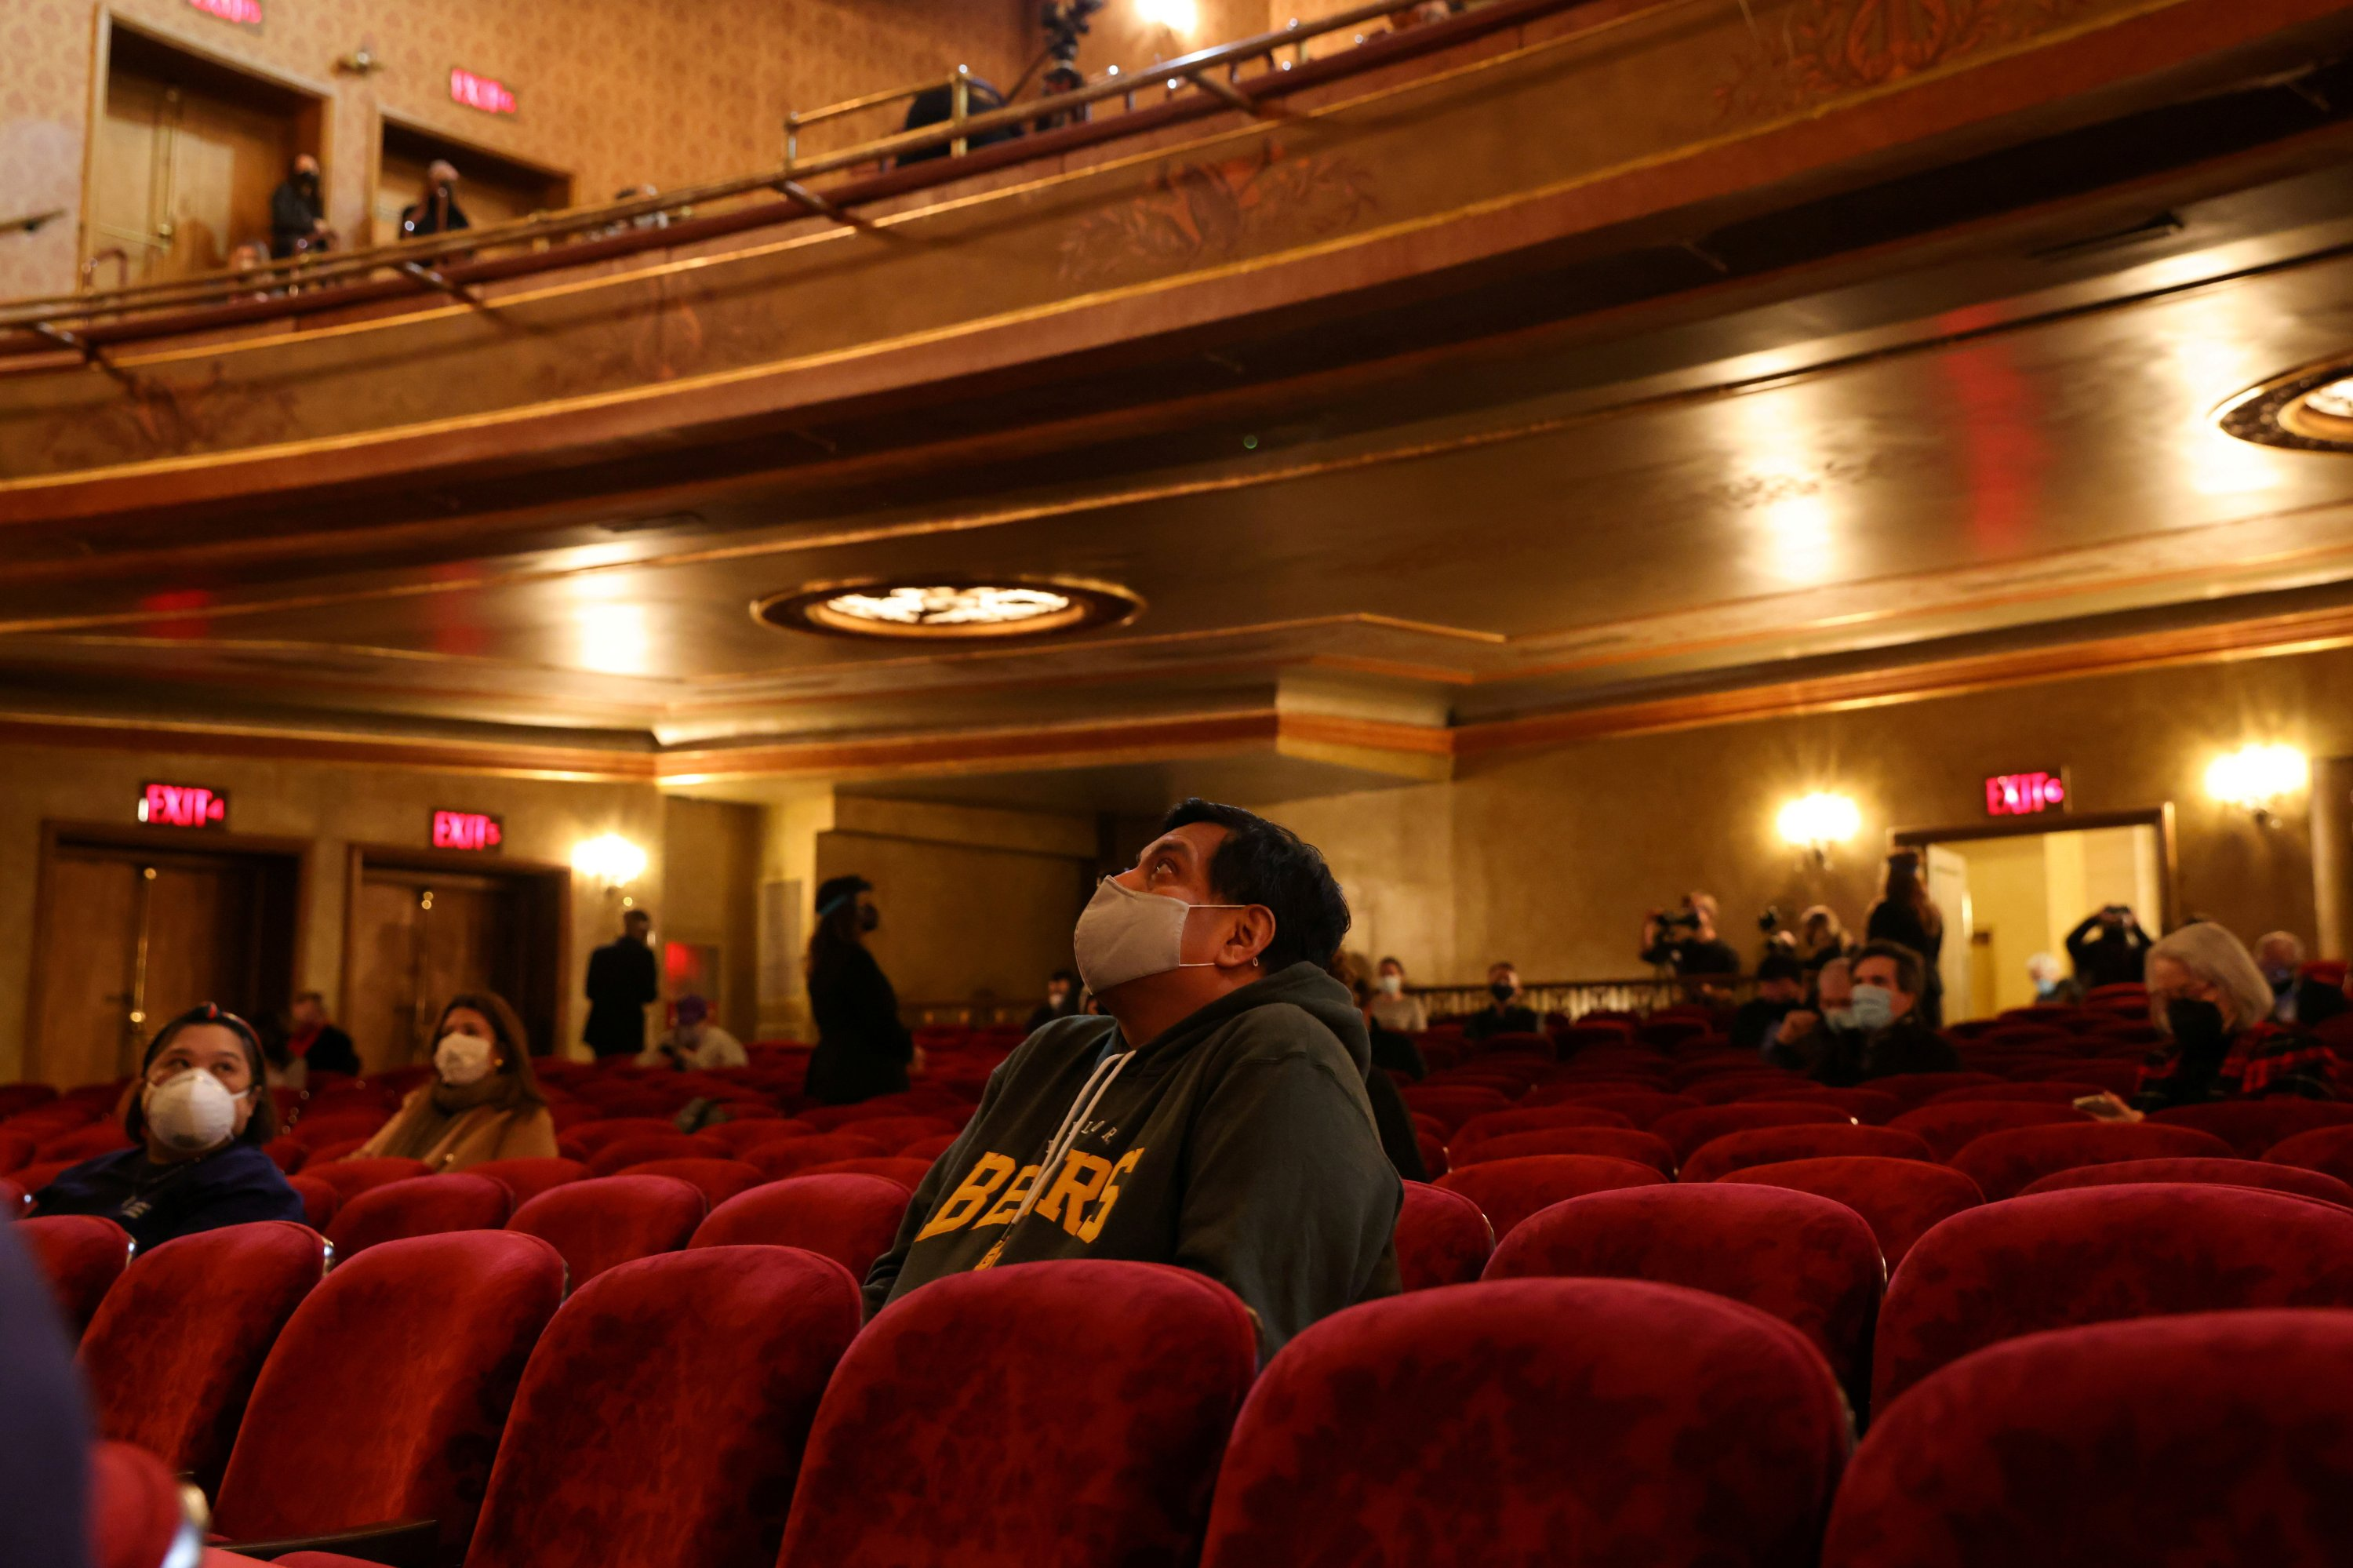 Audience members wait at the Saint James Theater for Broadway's first performance since shutting down for COVID-19 in New York City, U.S., April 3, 2021. (Reuters Photo)